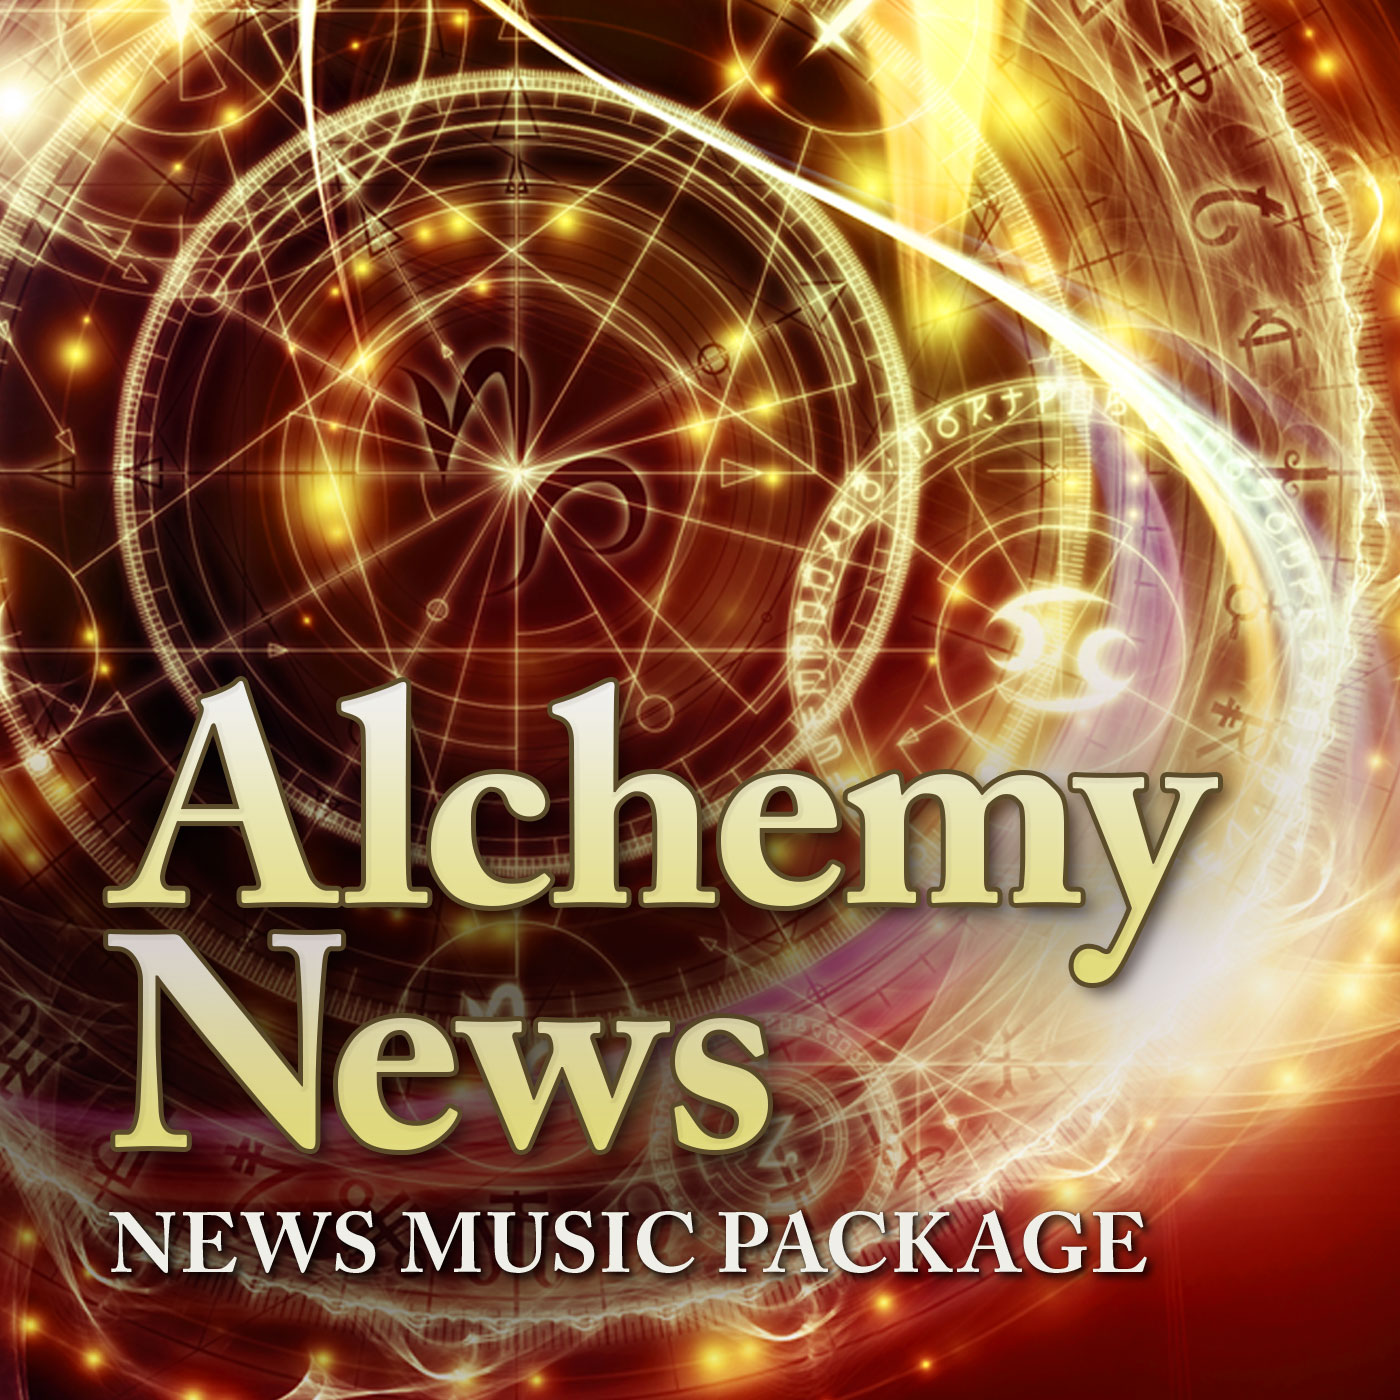 Alchemy News Music Package